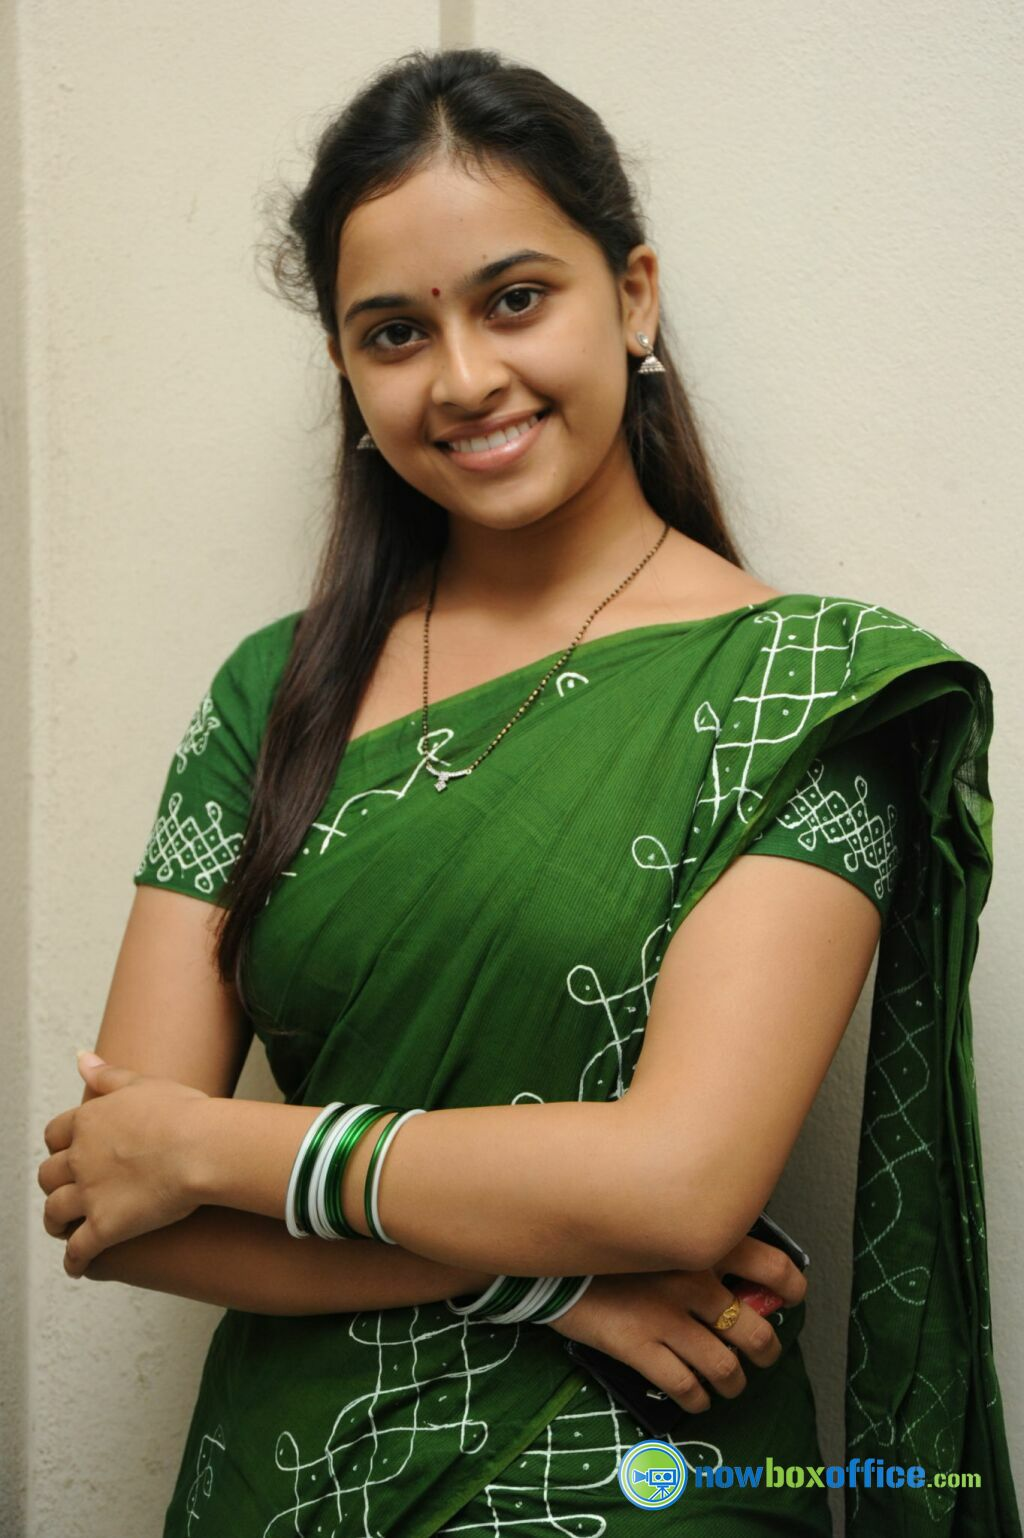 Actress Sri Divya Photos: Actress Wallpaper HOt Free Download Hd For Laptop Hot